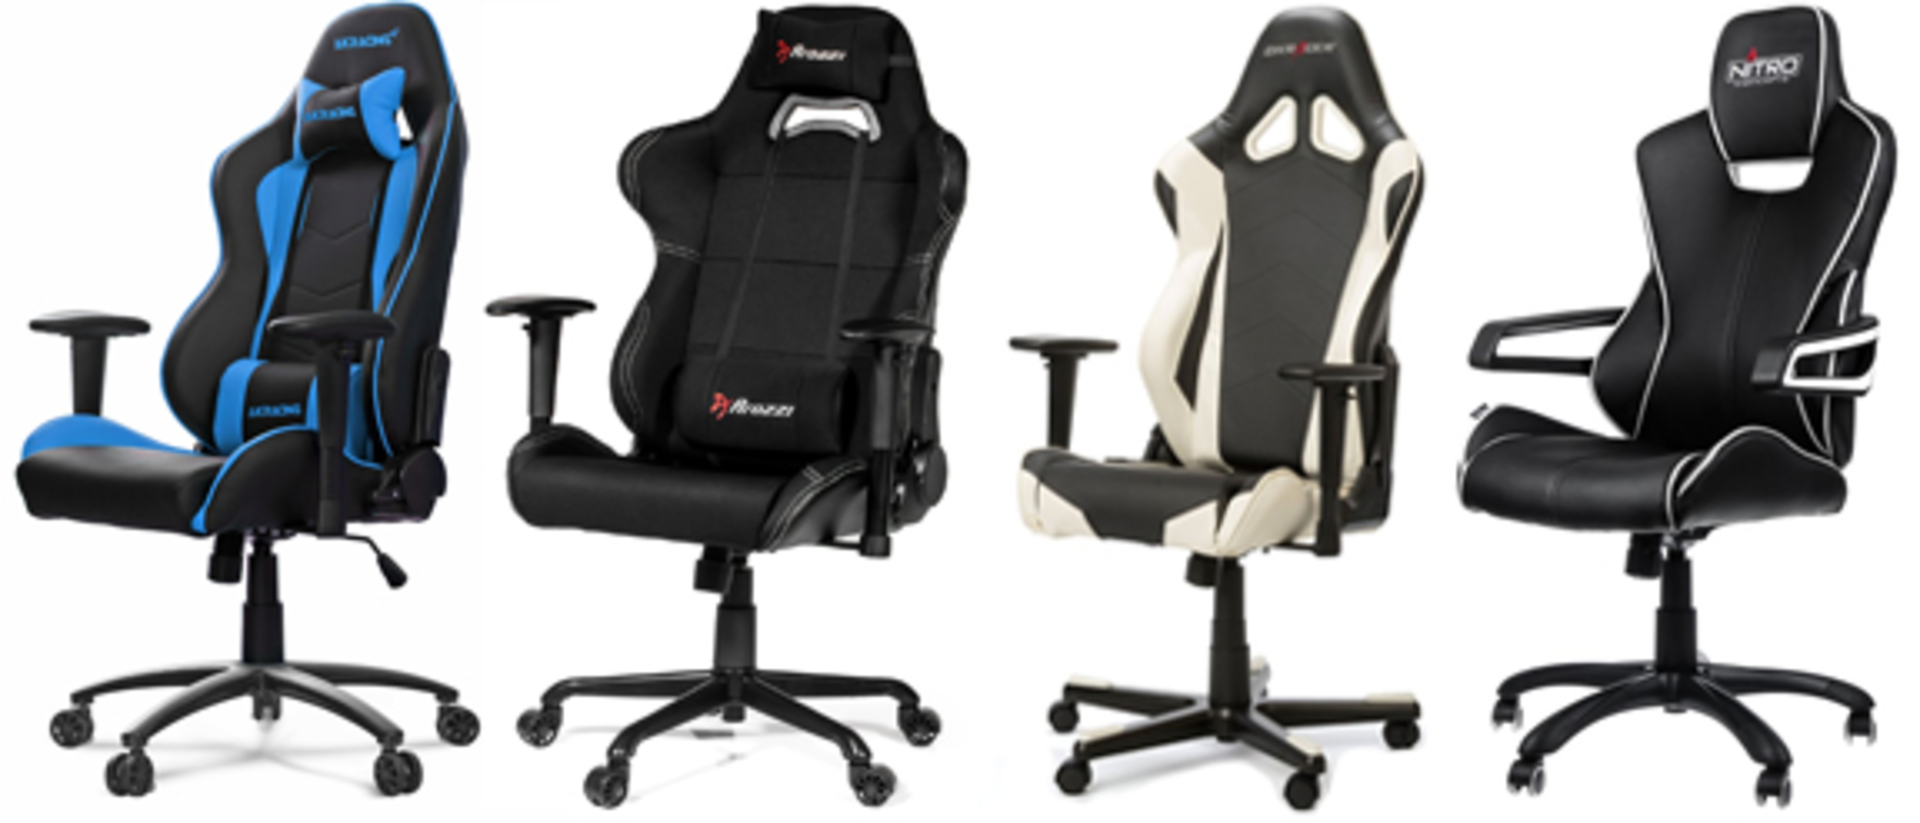 gaming chair companies walmart com chairs eight roundup review